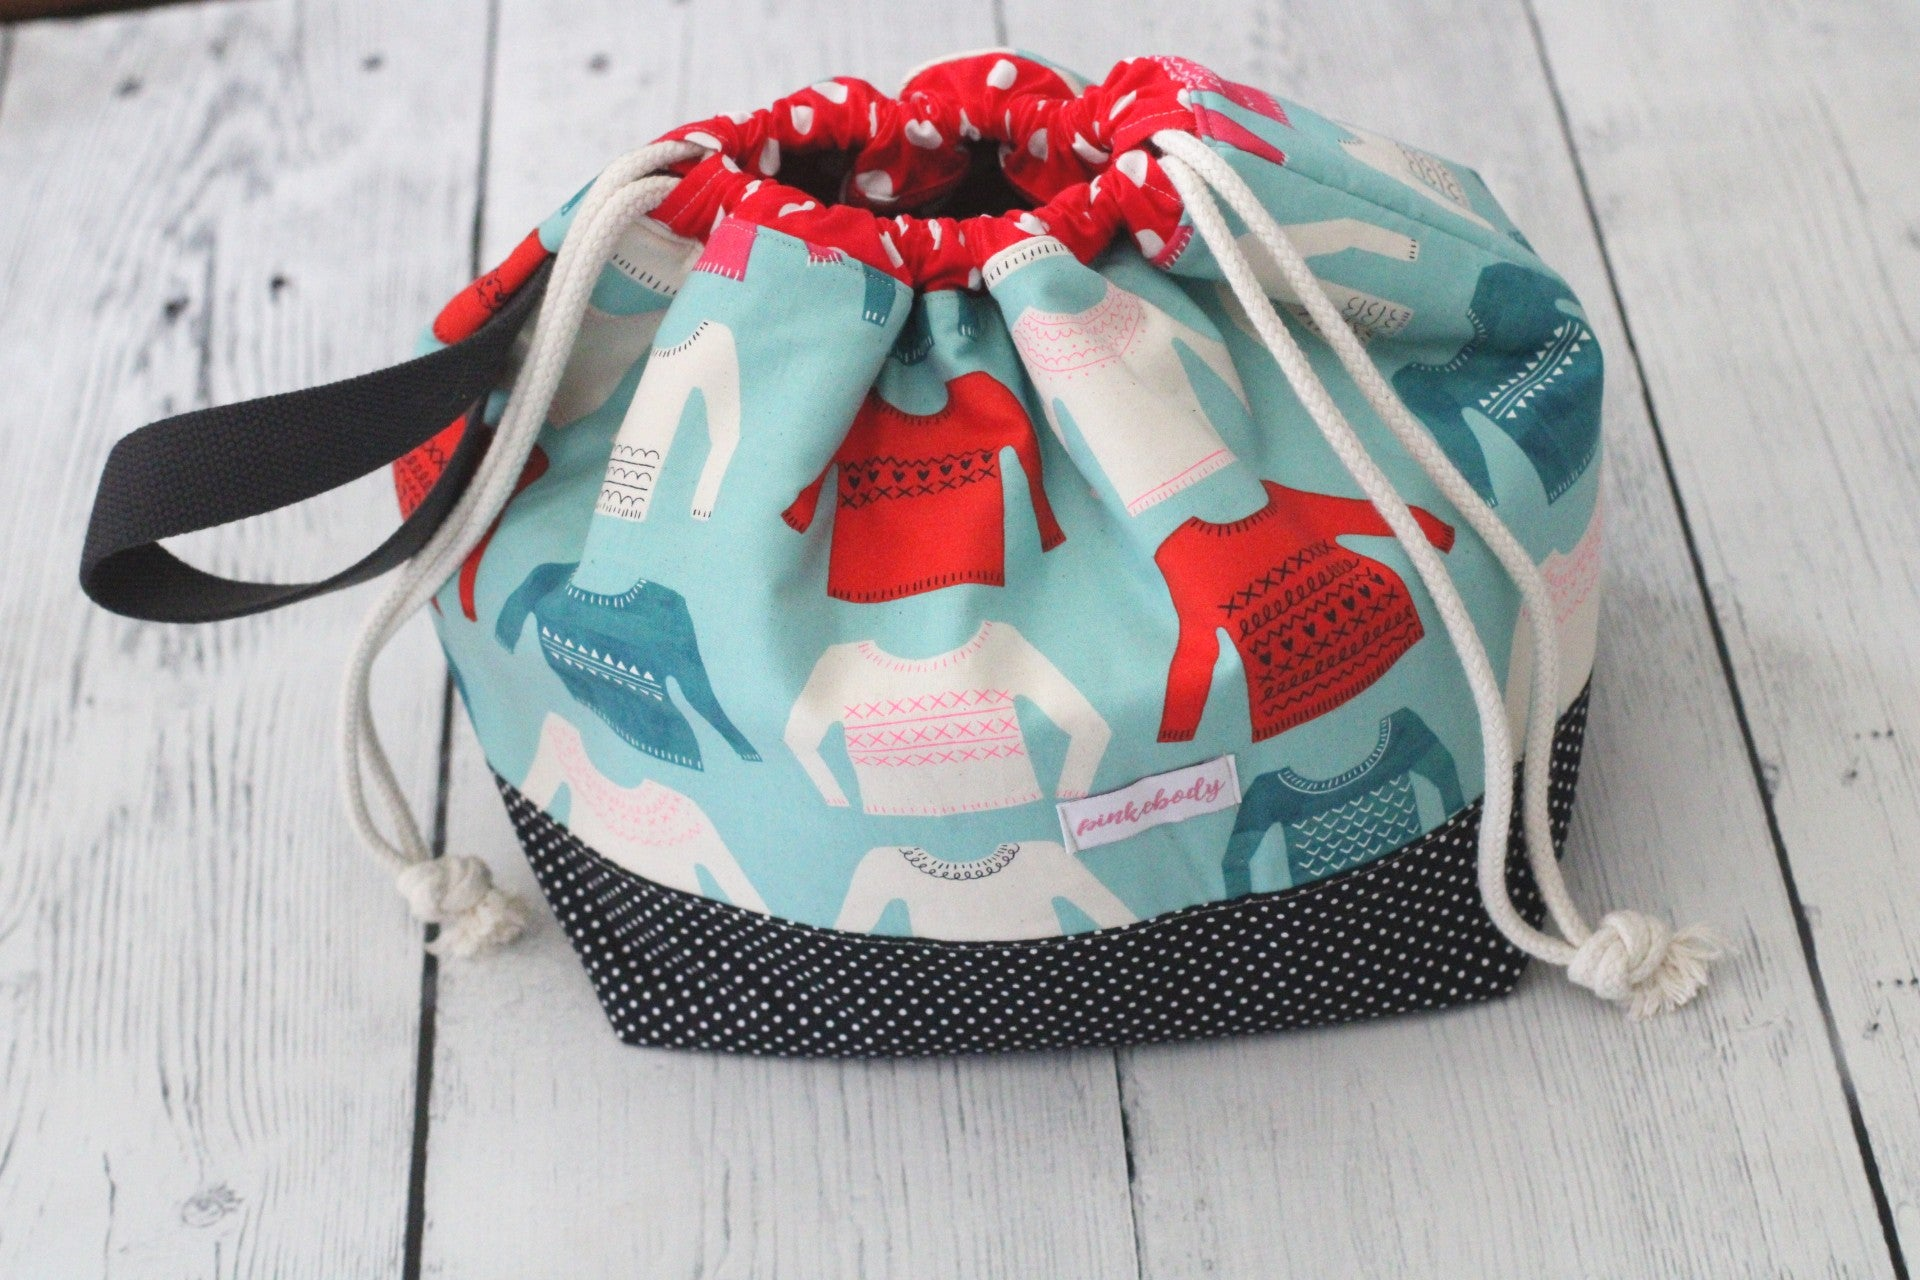 Sweater Finch Bucket Large Project Bag (Red Accents)